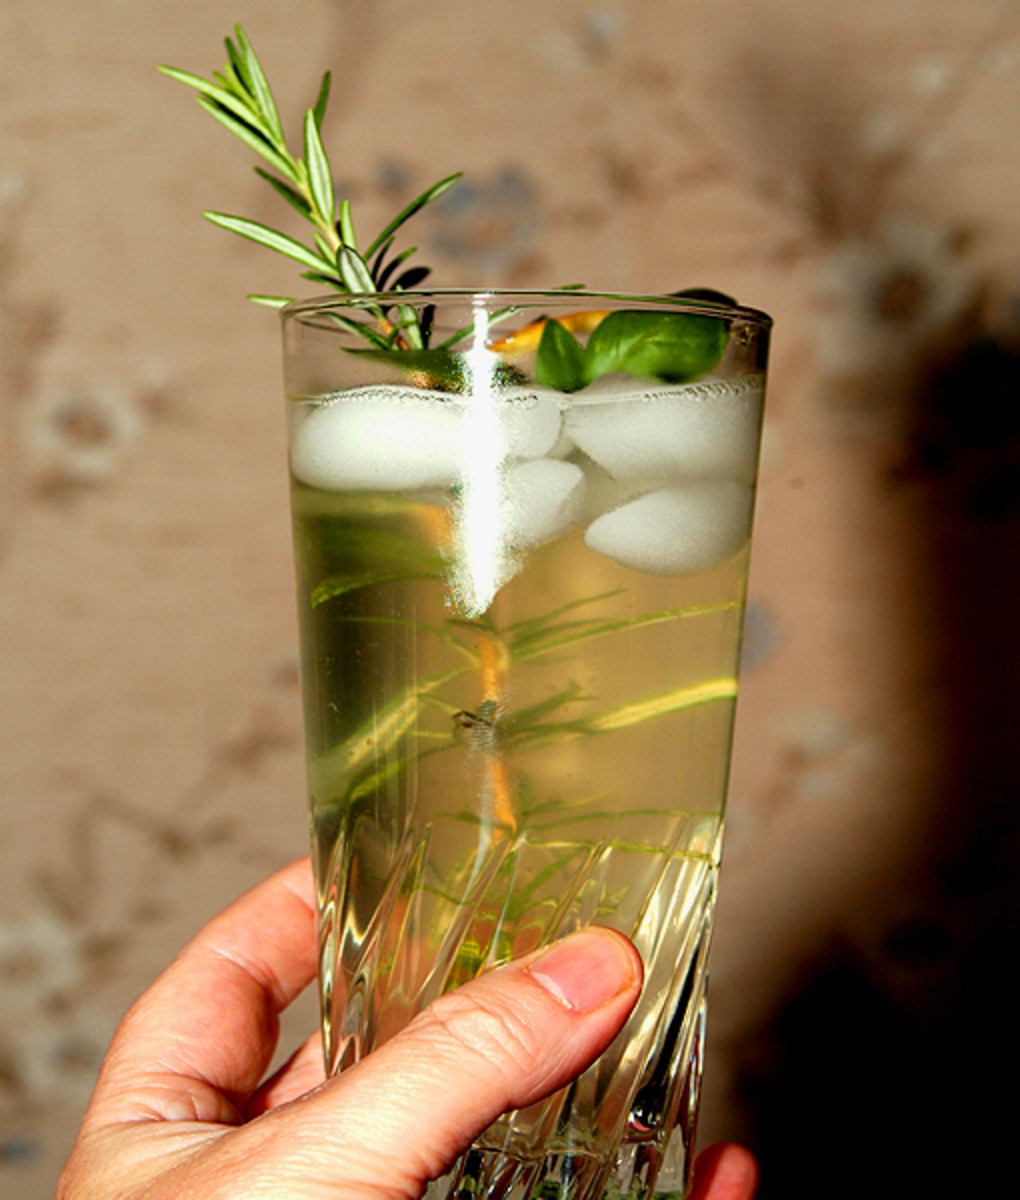 Garnish with a fresh sprig of rosemary and basil and serve.